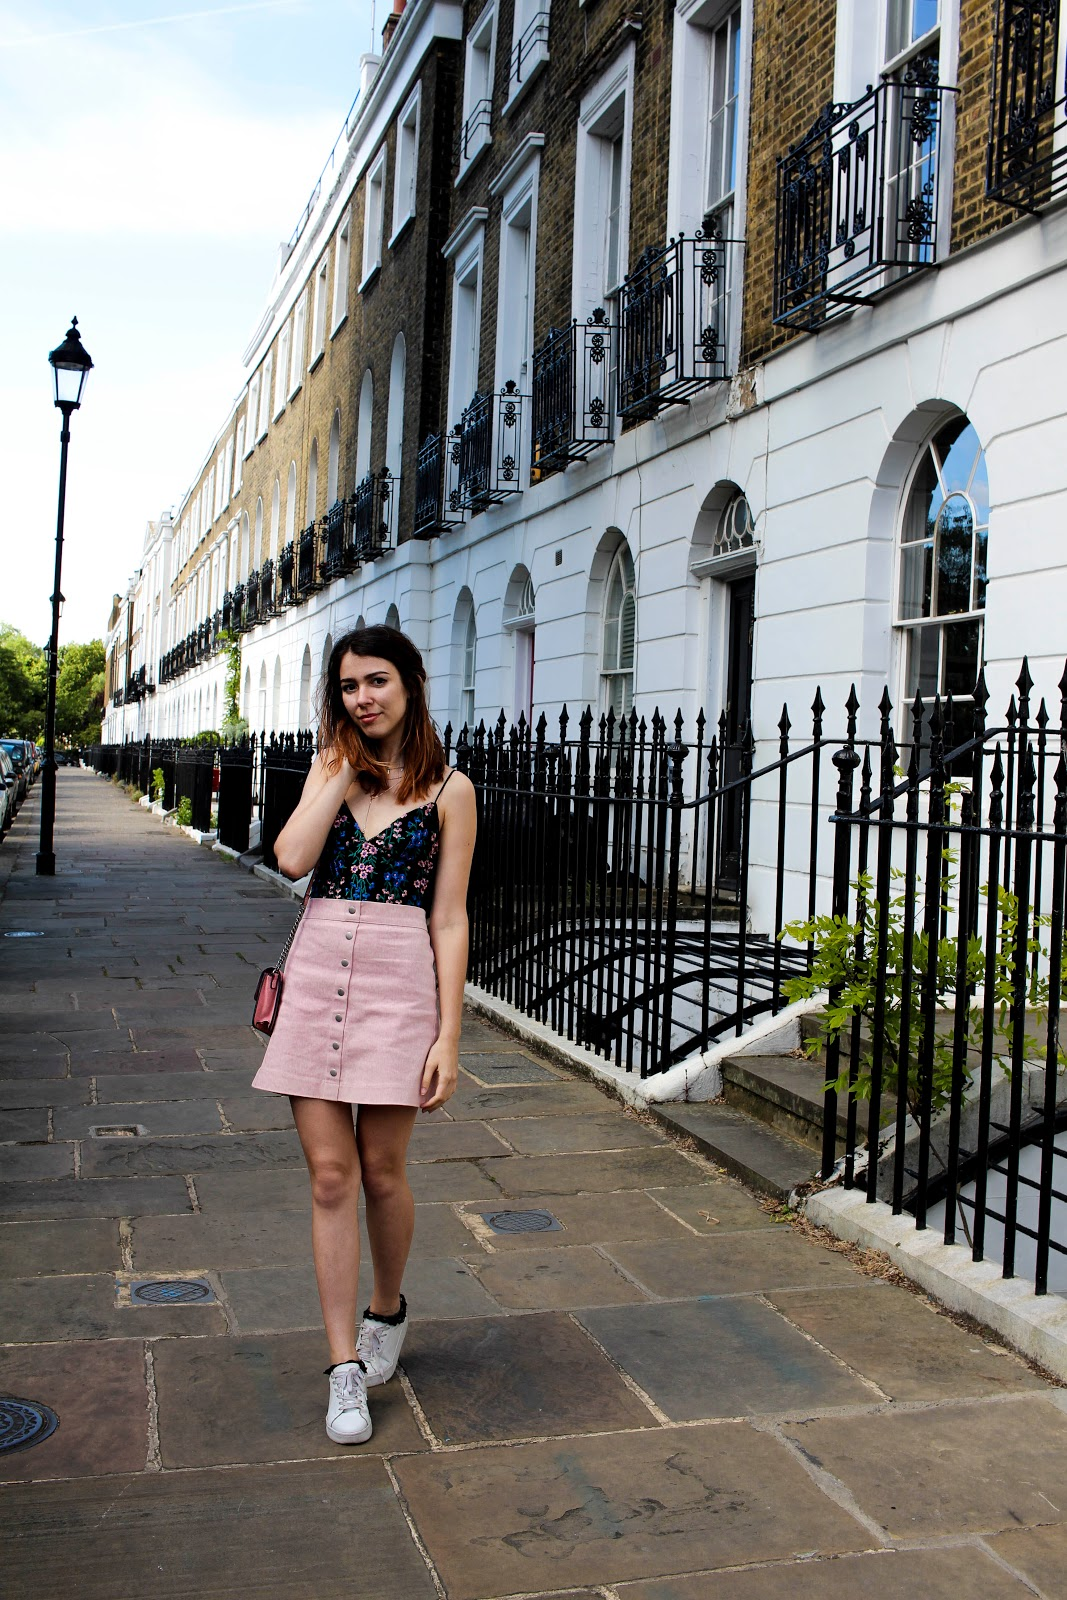 London, ootd, outfit, french blogger london, london blogger, topshop, embroidery, embroidered, mango, ring bag, newlook shoes, portobello road, floral body,